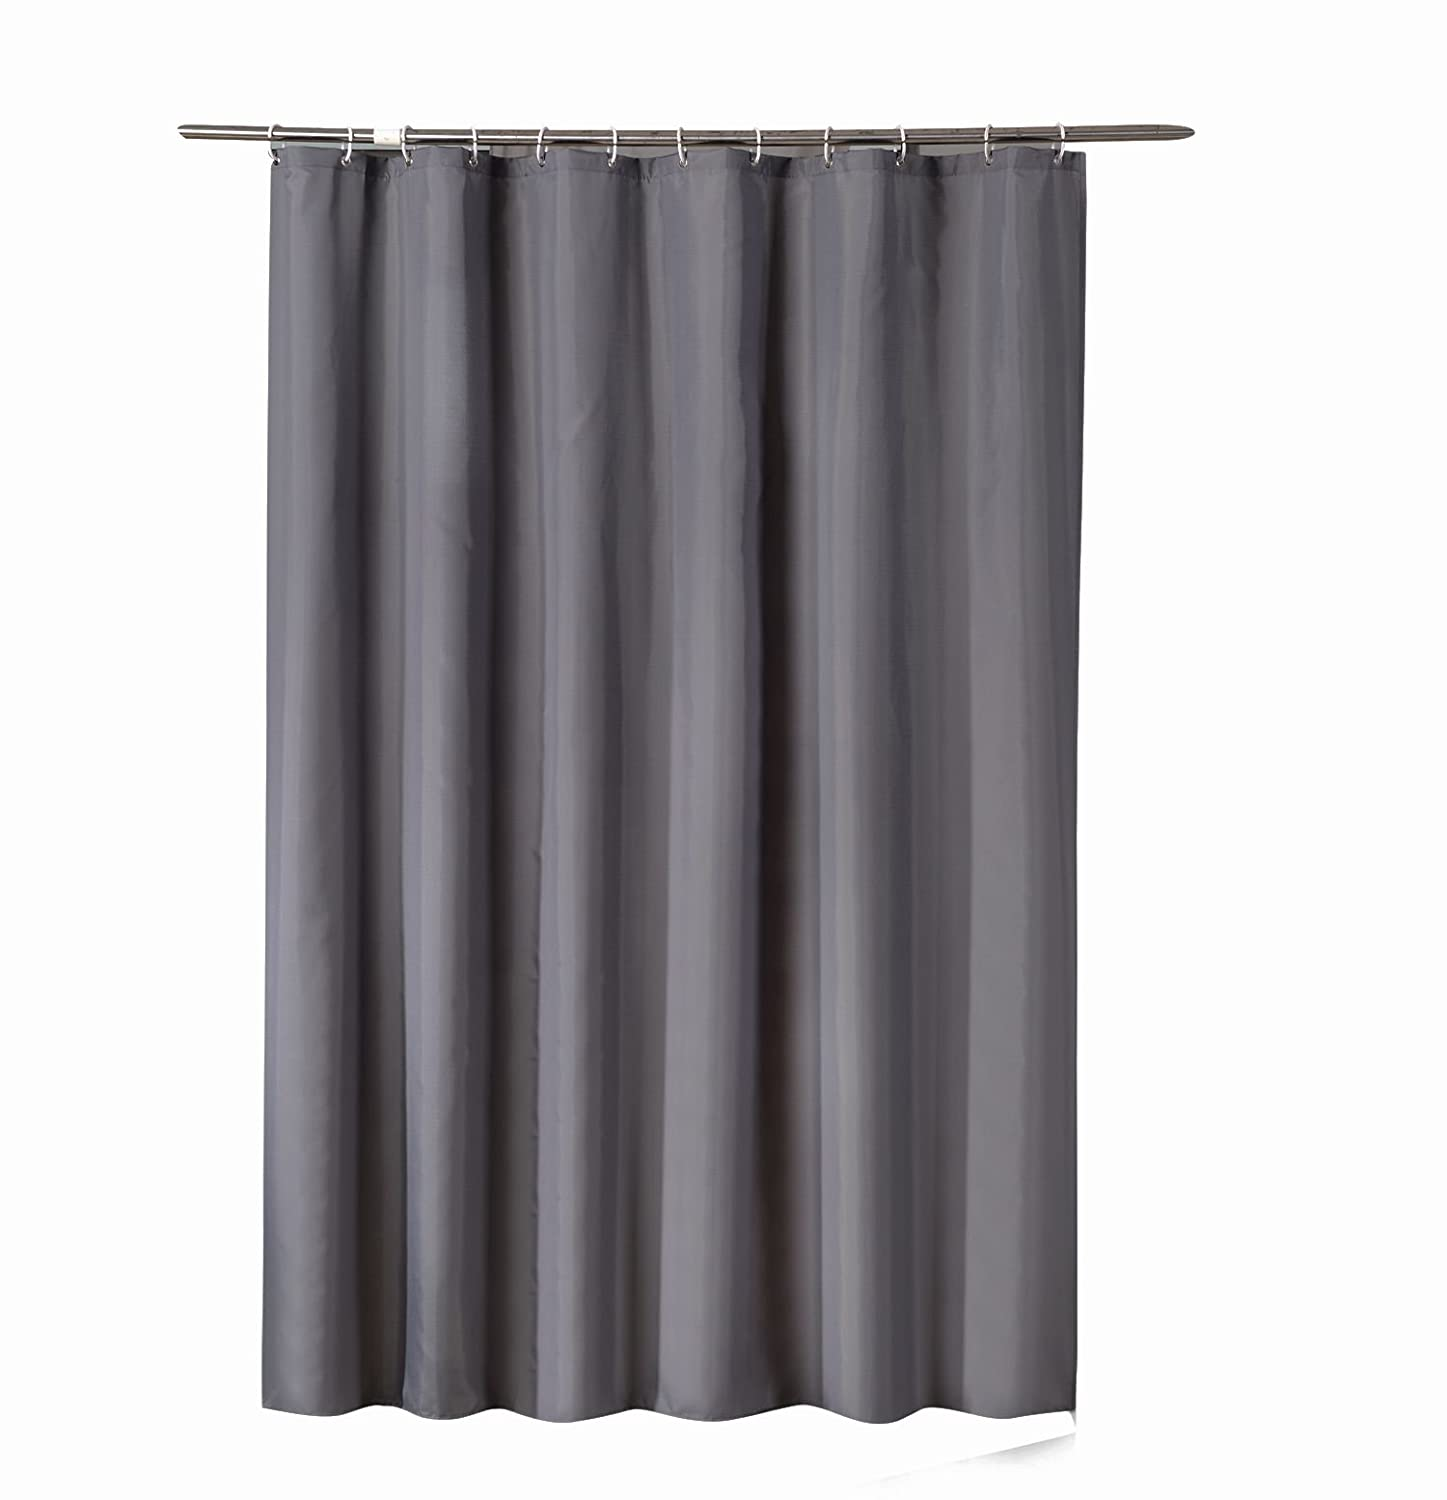 Sfoothome 90cm Wide X 180cm Long Black Shower Curtain Waterproof Polyester Fabric Liner